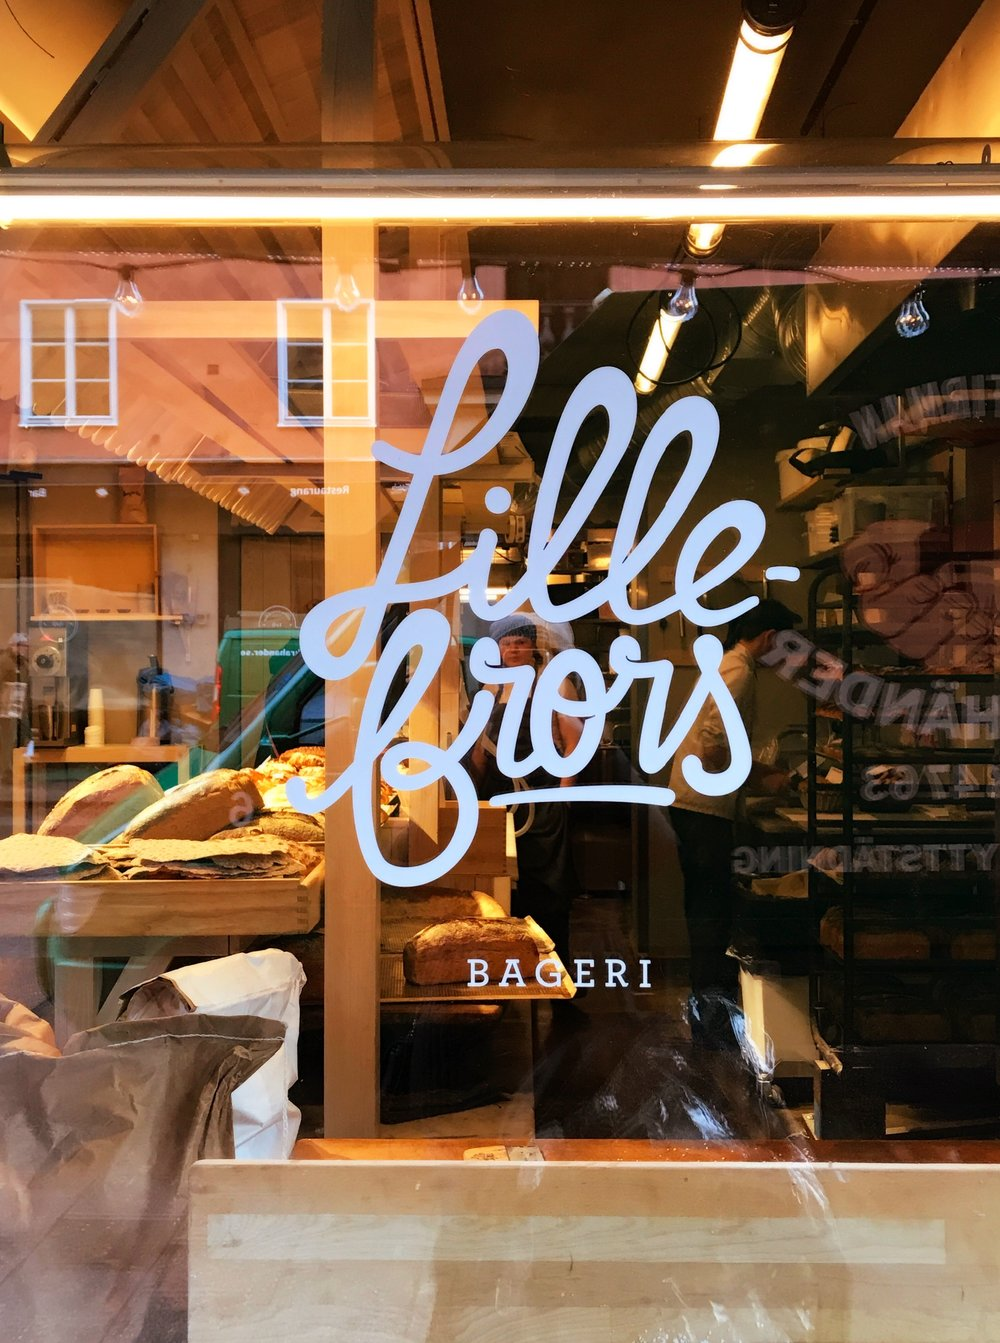 Lille-Brors Bageri